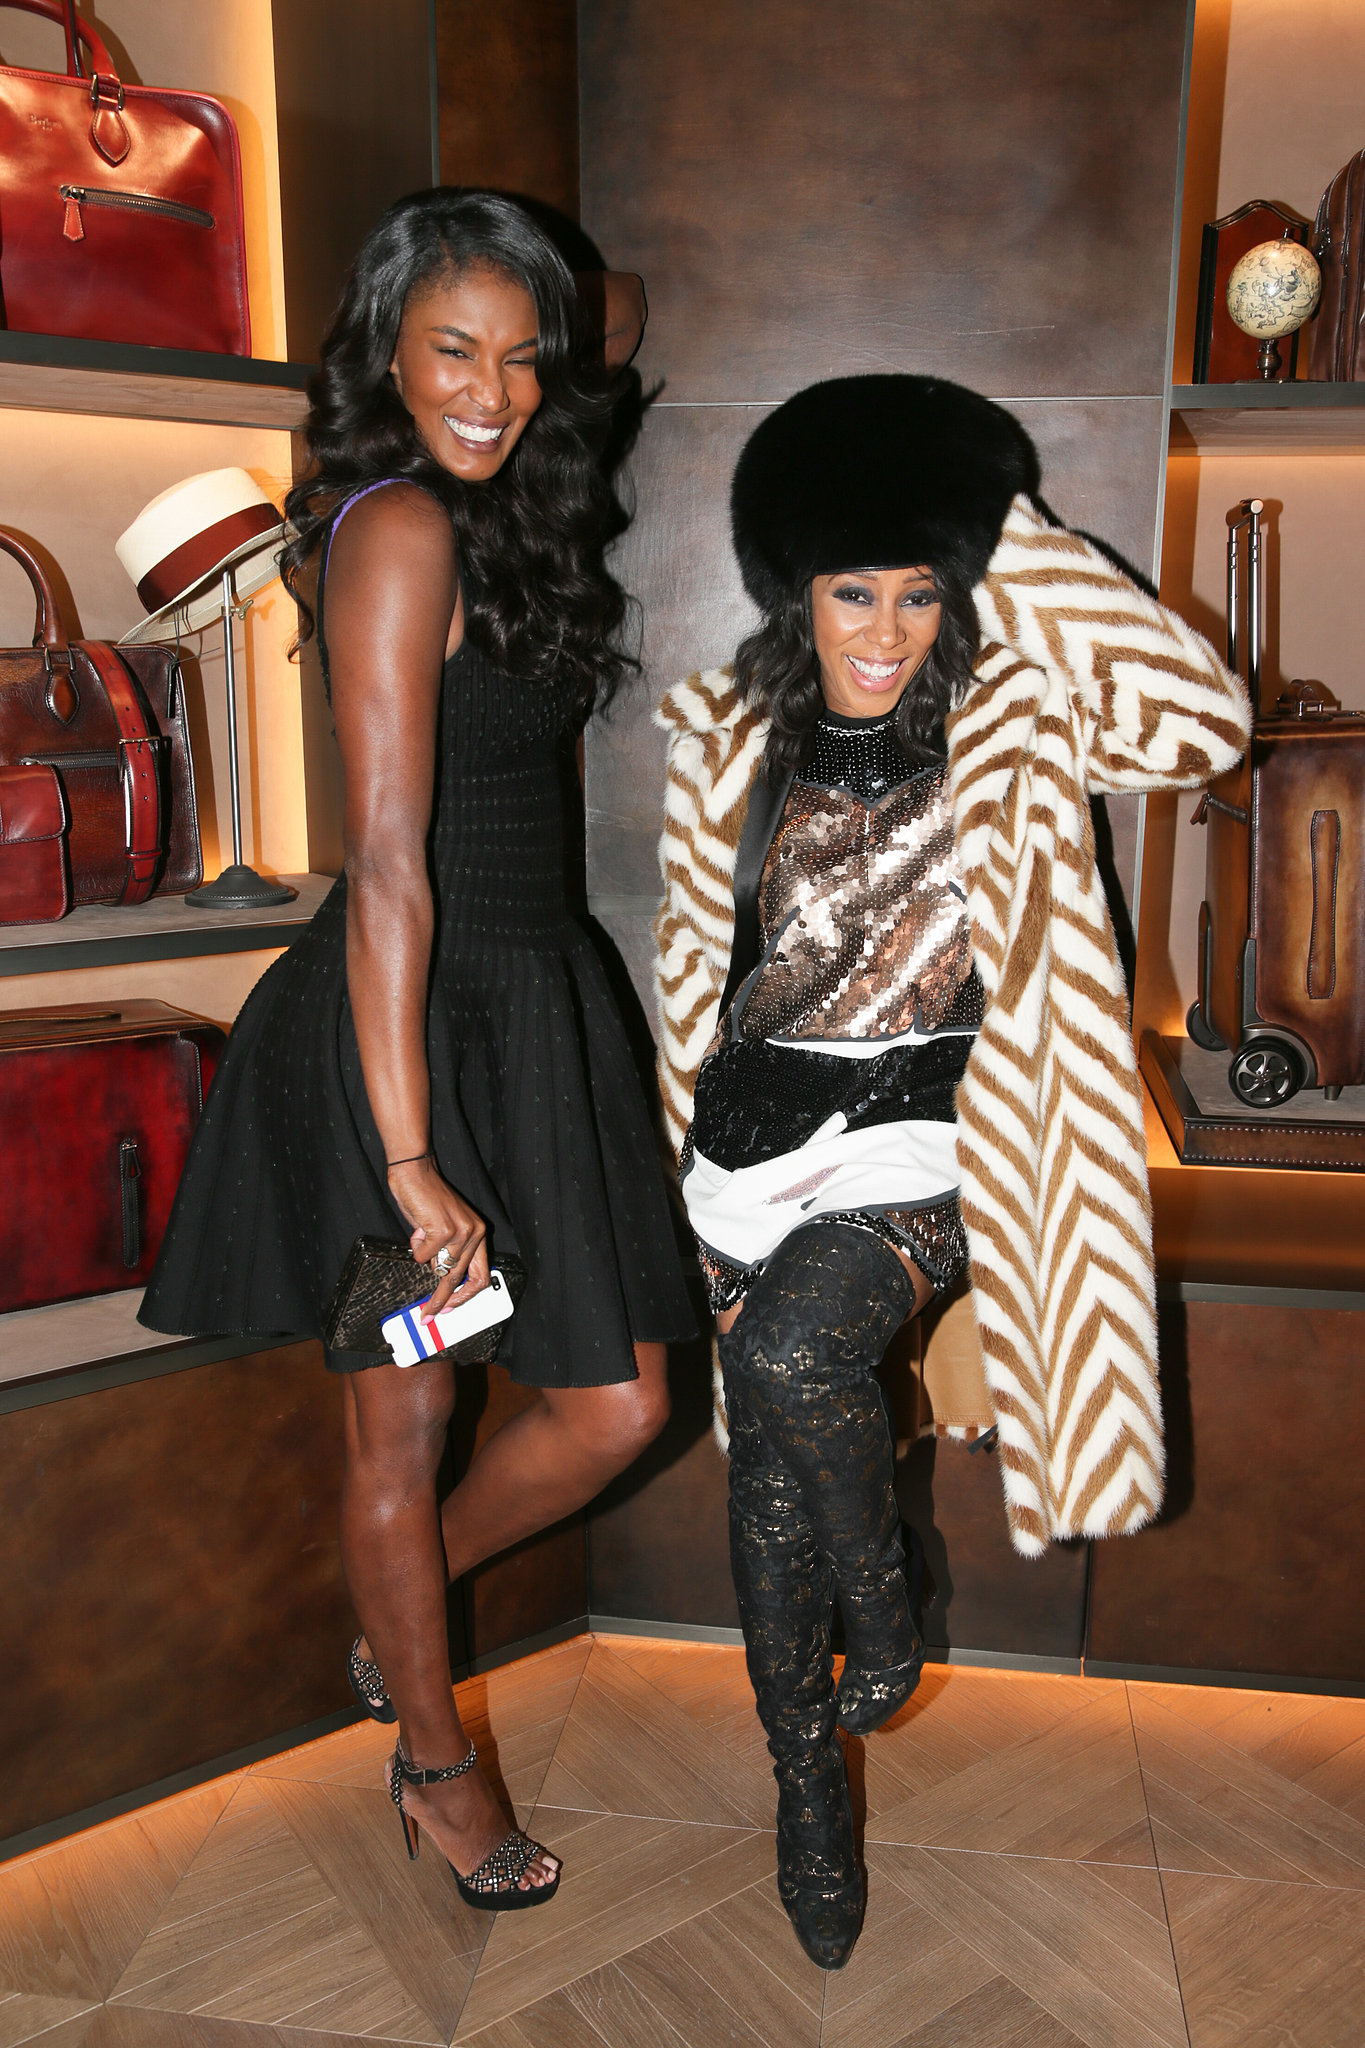 Sessilee Lopez and June Ambrose at Berluti's Madison Avenue store opening.